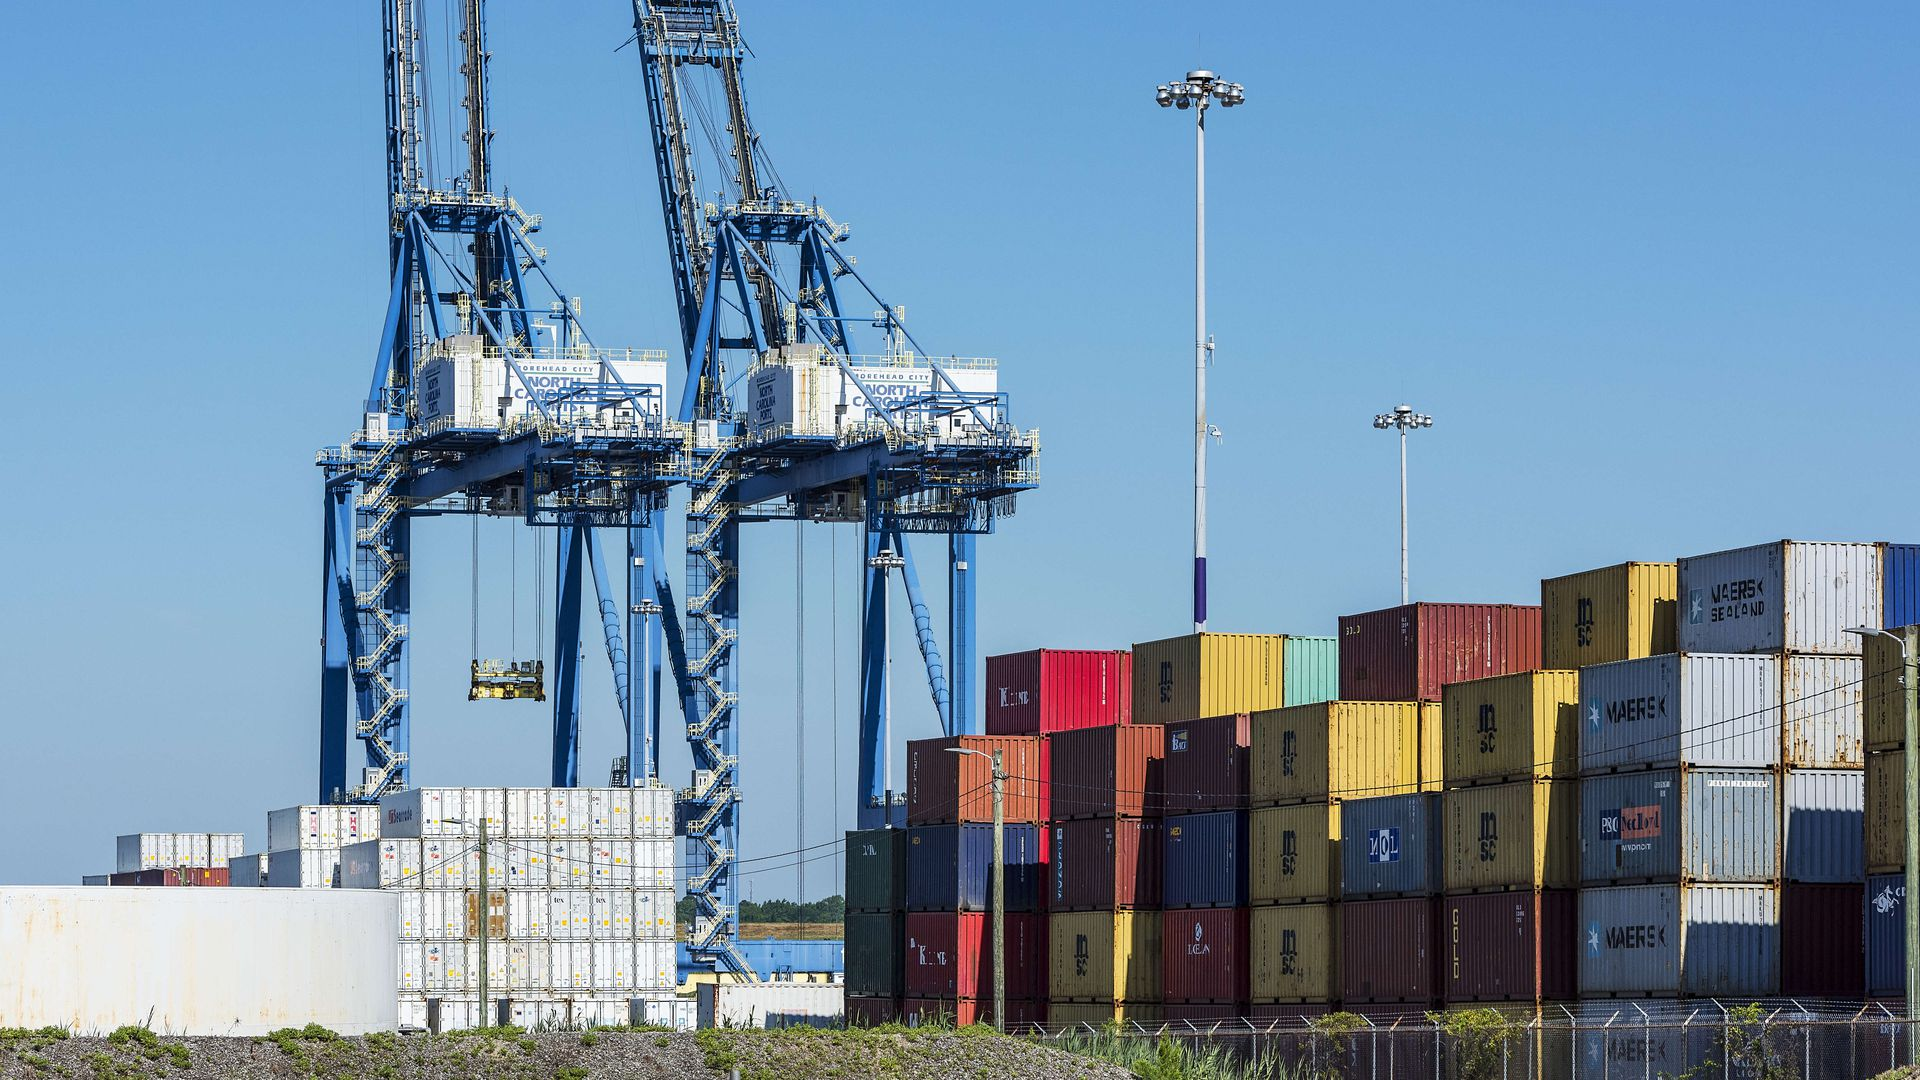 Brightly colored shipping containers and cranes at a port